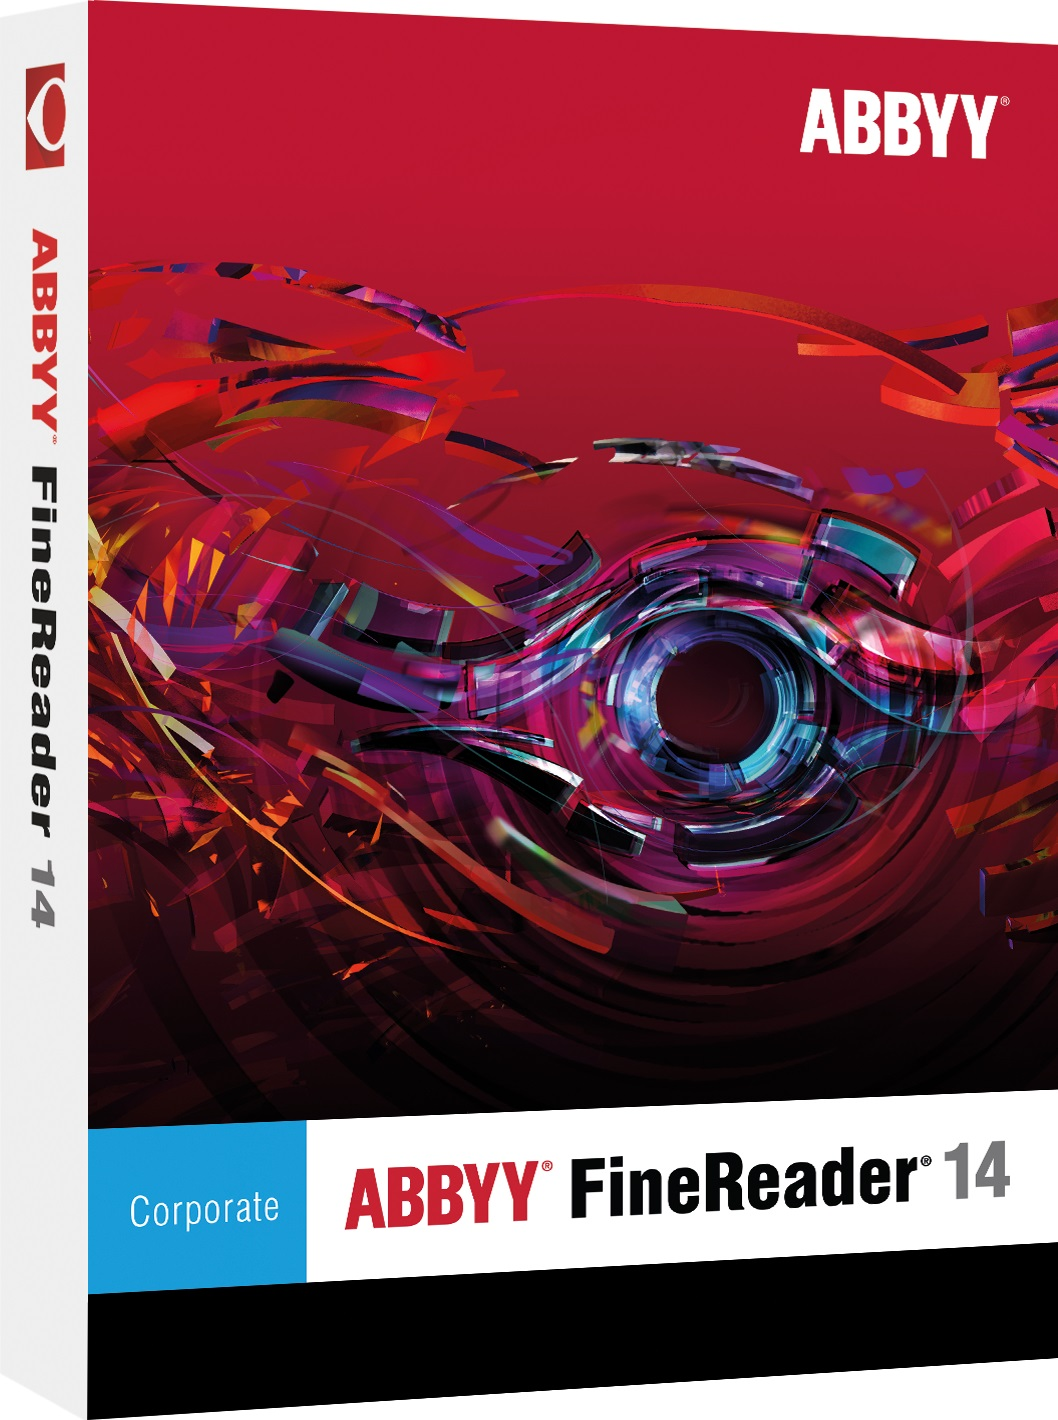 Corporate-abbyy-finereader14-box-l-rgb.jpg